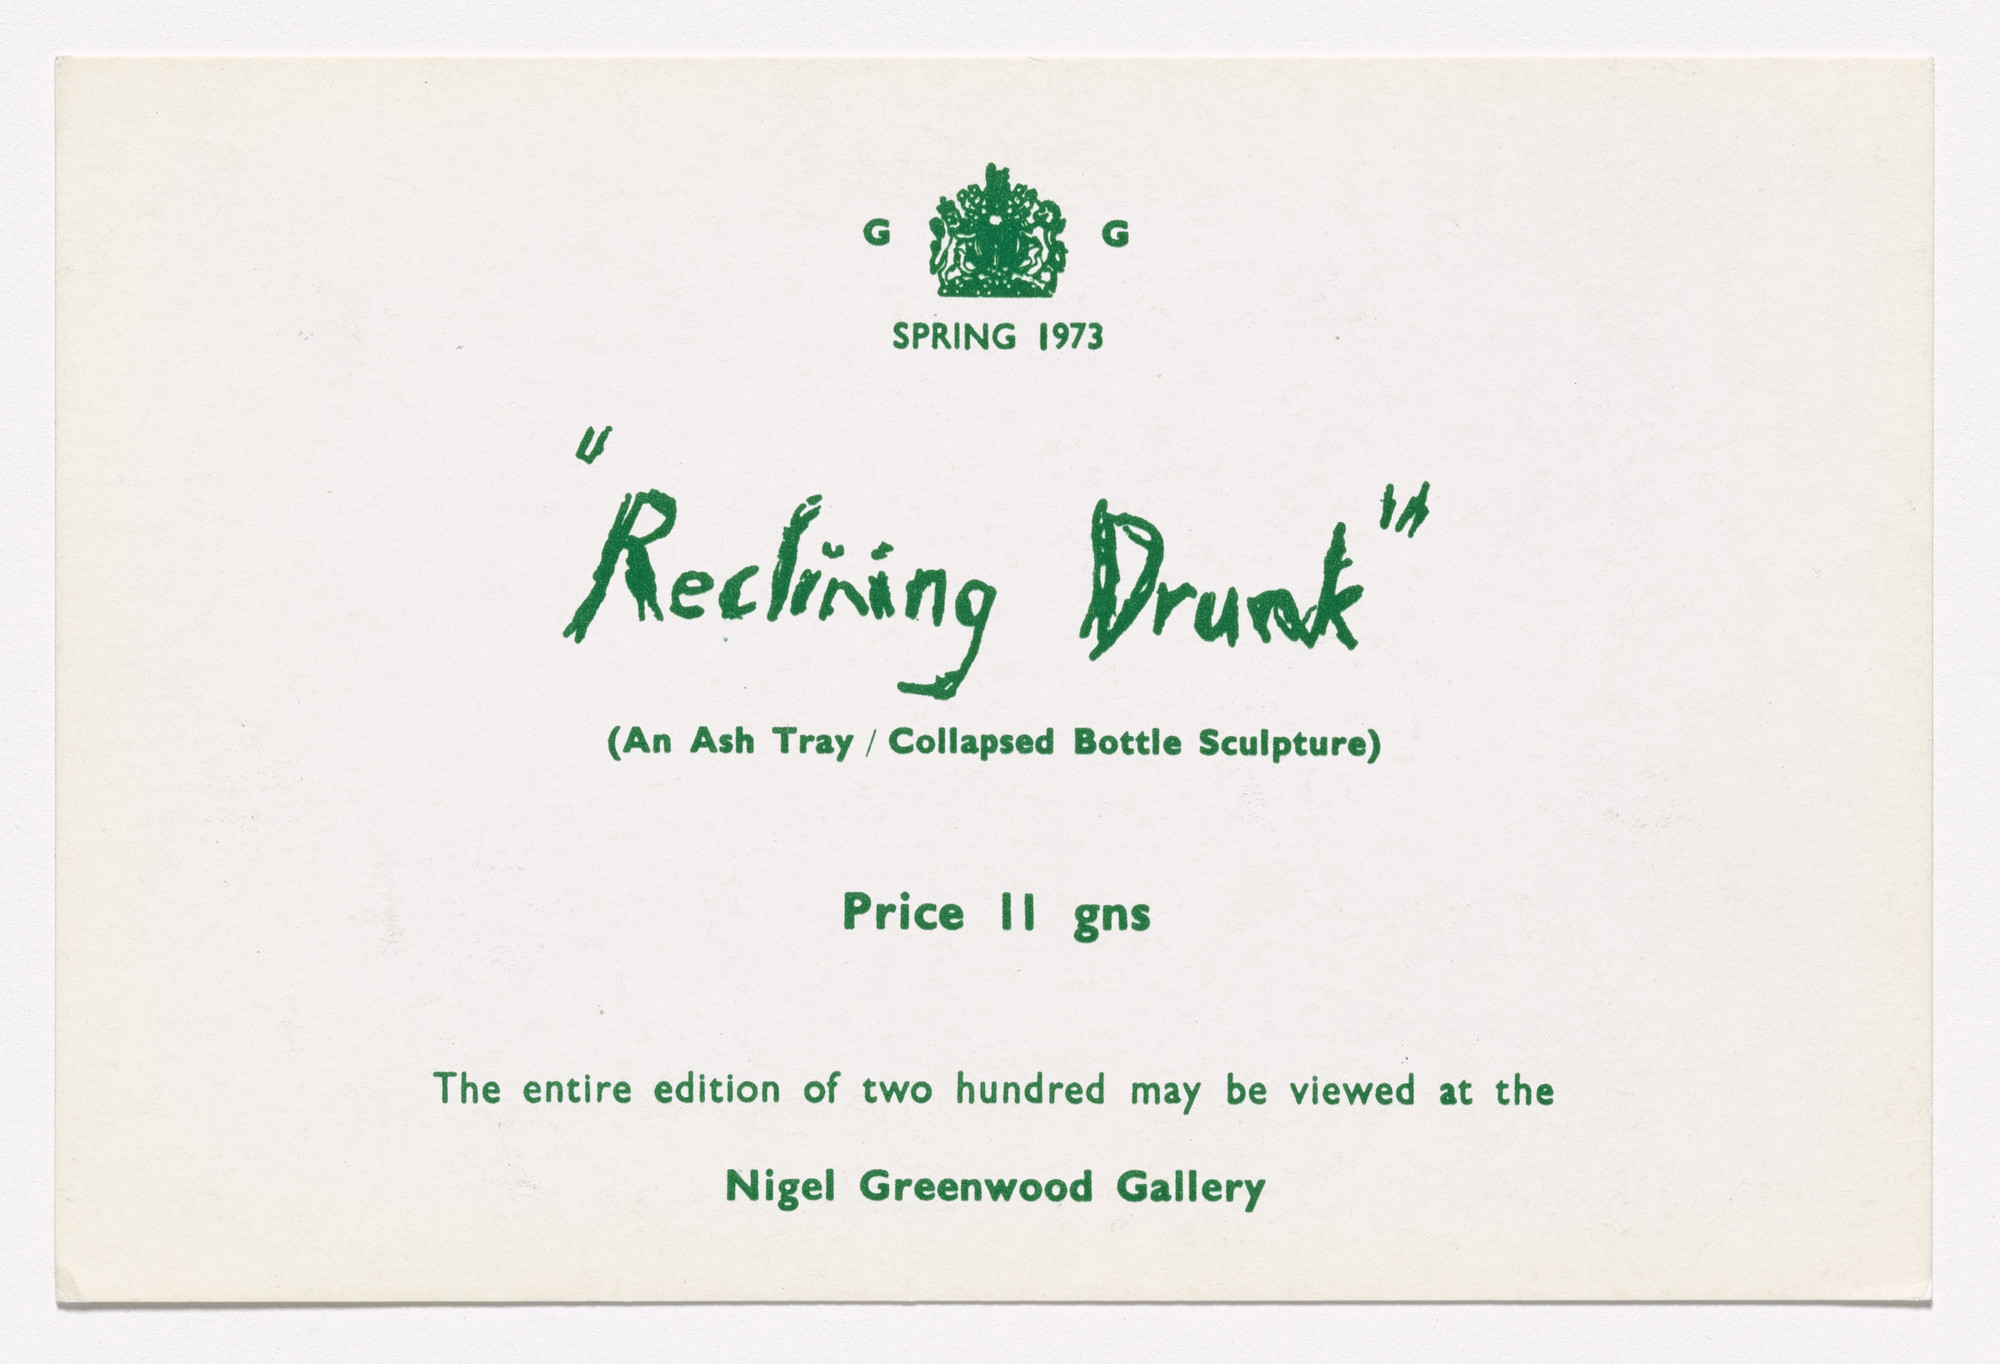 Gilbert & George. Announcement card for Reclining Drunk. 1973